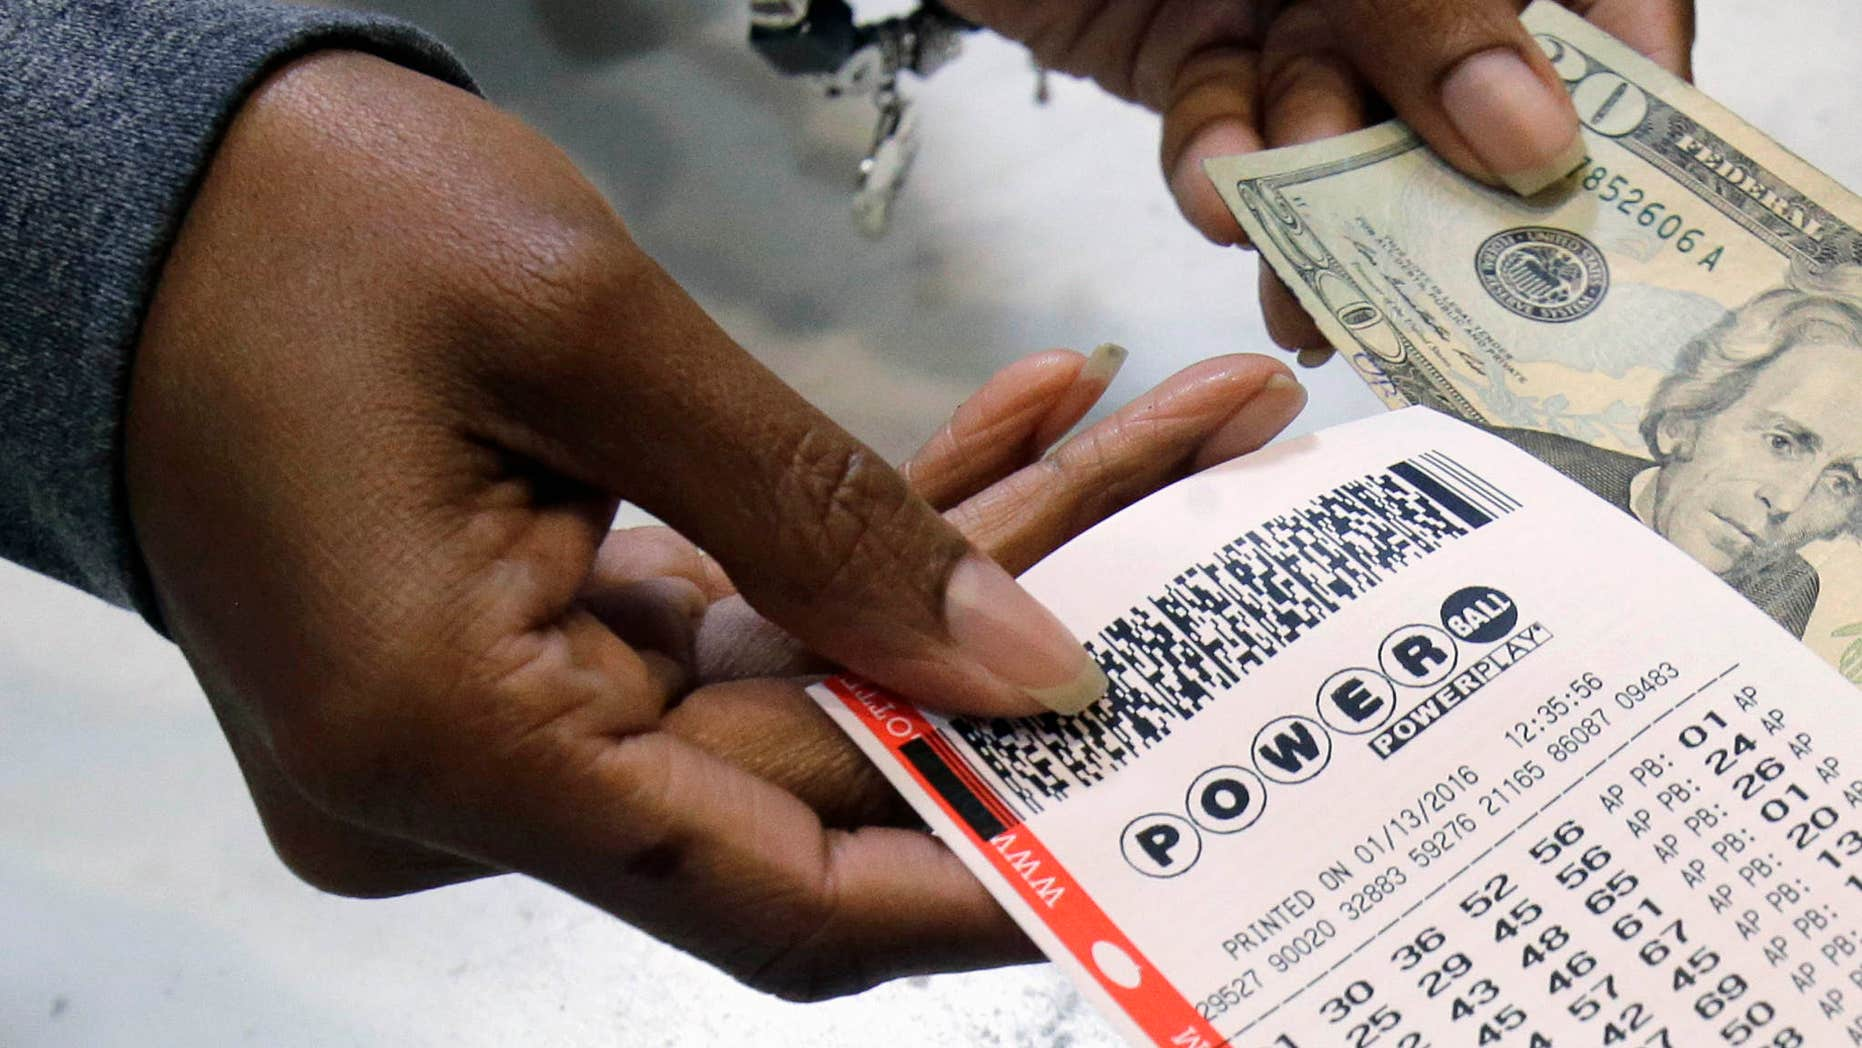 FILE - In this Jan. 13, 2016 file photo, a clerk hands over a Powerball ticket for cash at Tower City Lottery Stop in Cleveland.